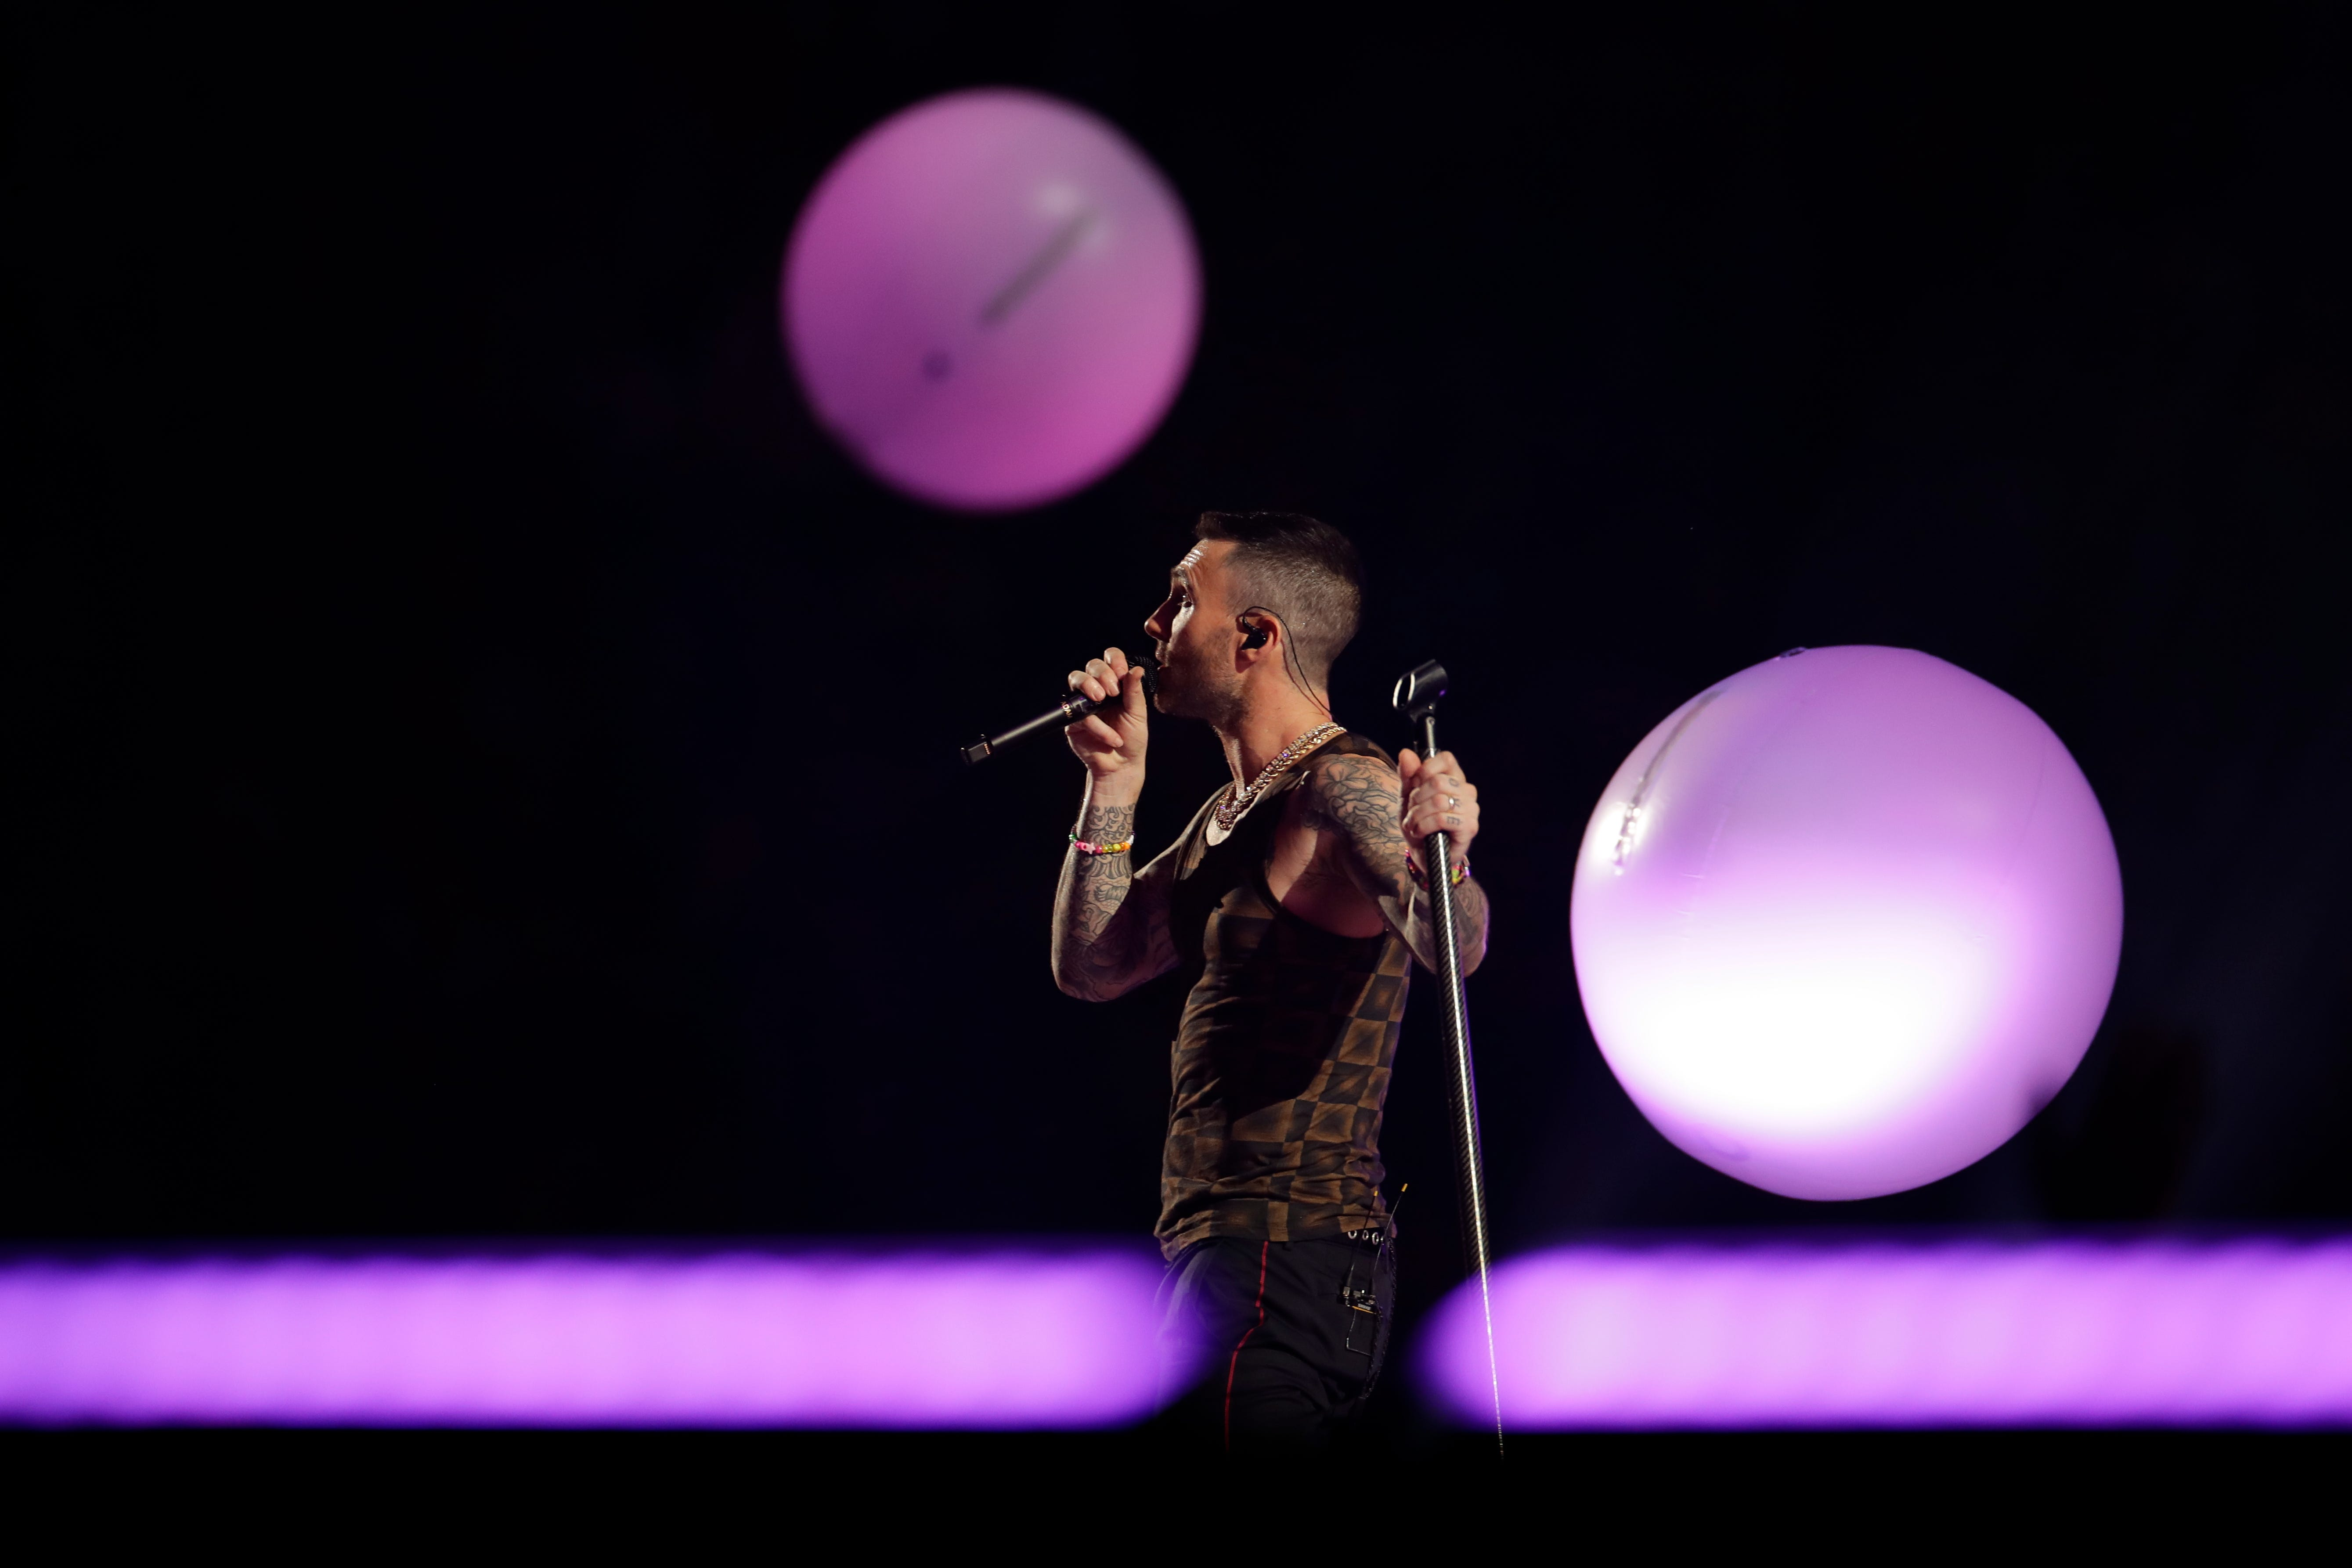 Adam Levine of Maroon 5 performs during halftime of the  Super Bowl.